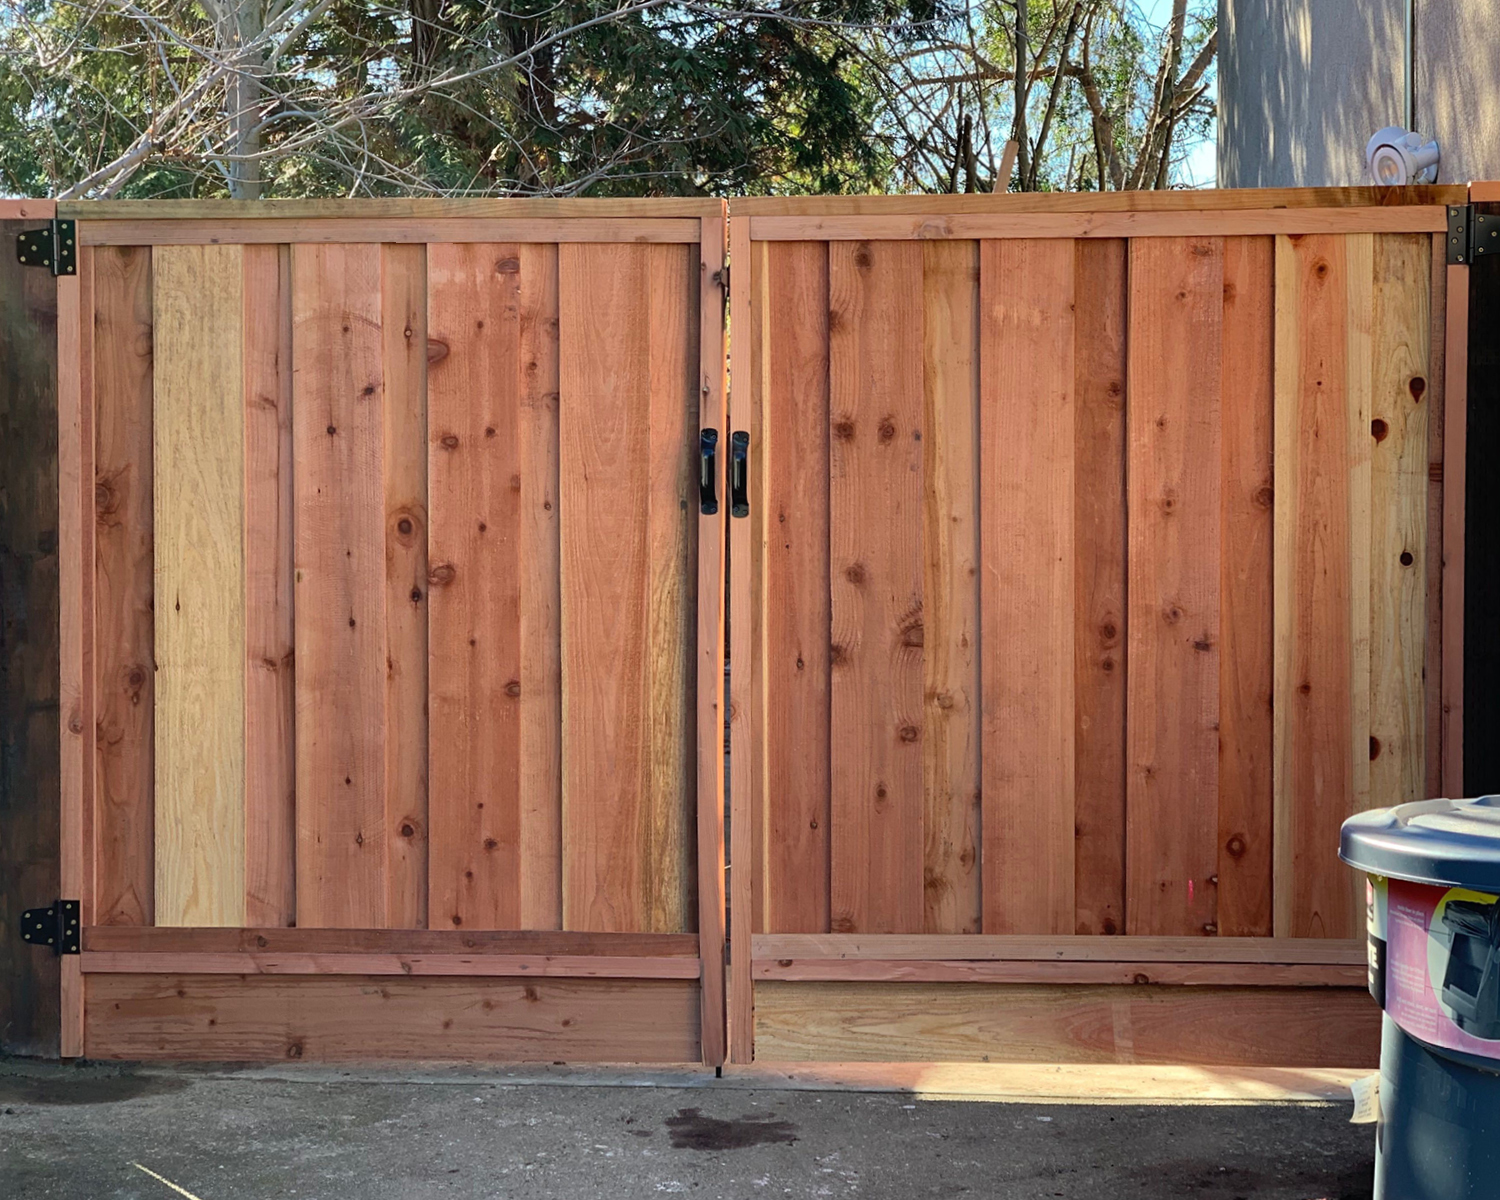 antioch-ca-picture-frame-double-drive-8-wide-7-tall-gate